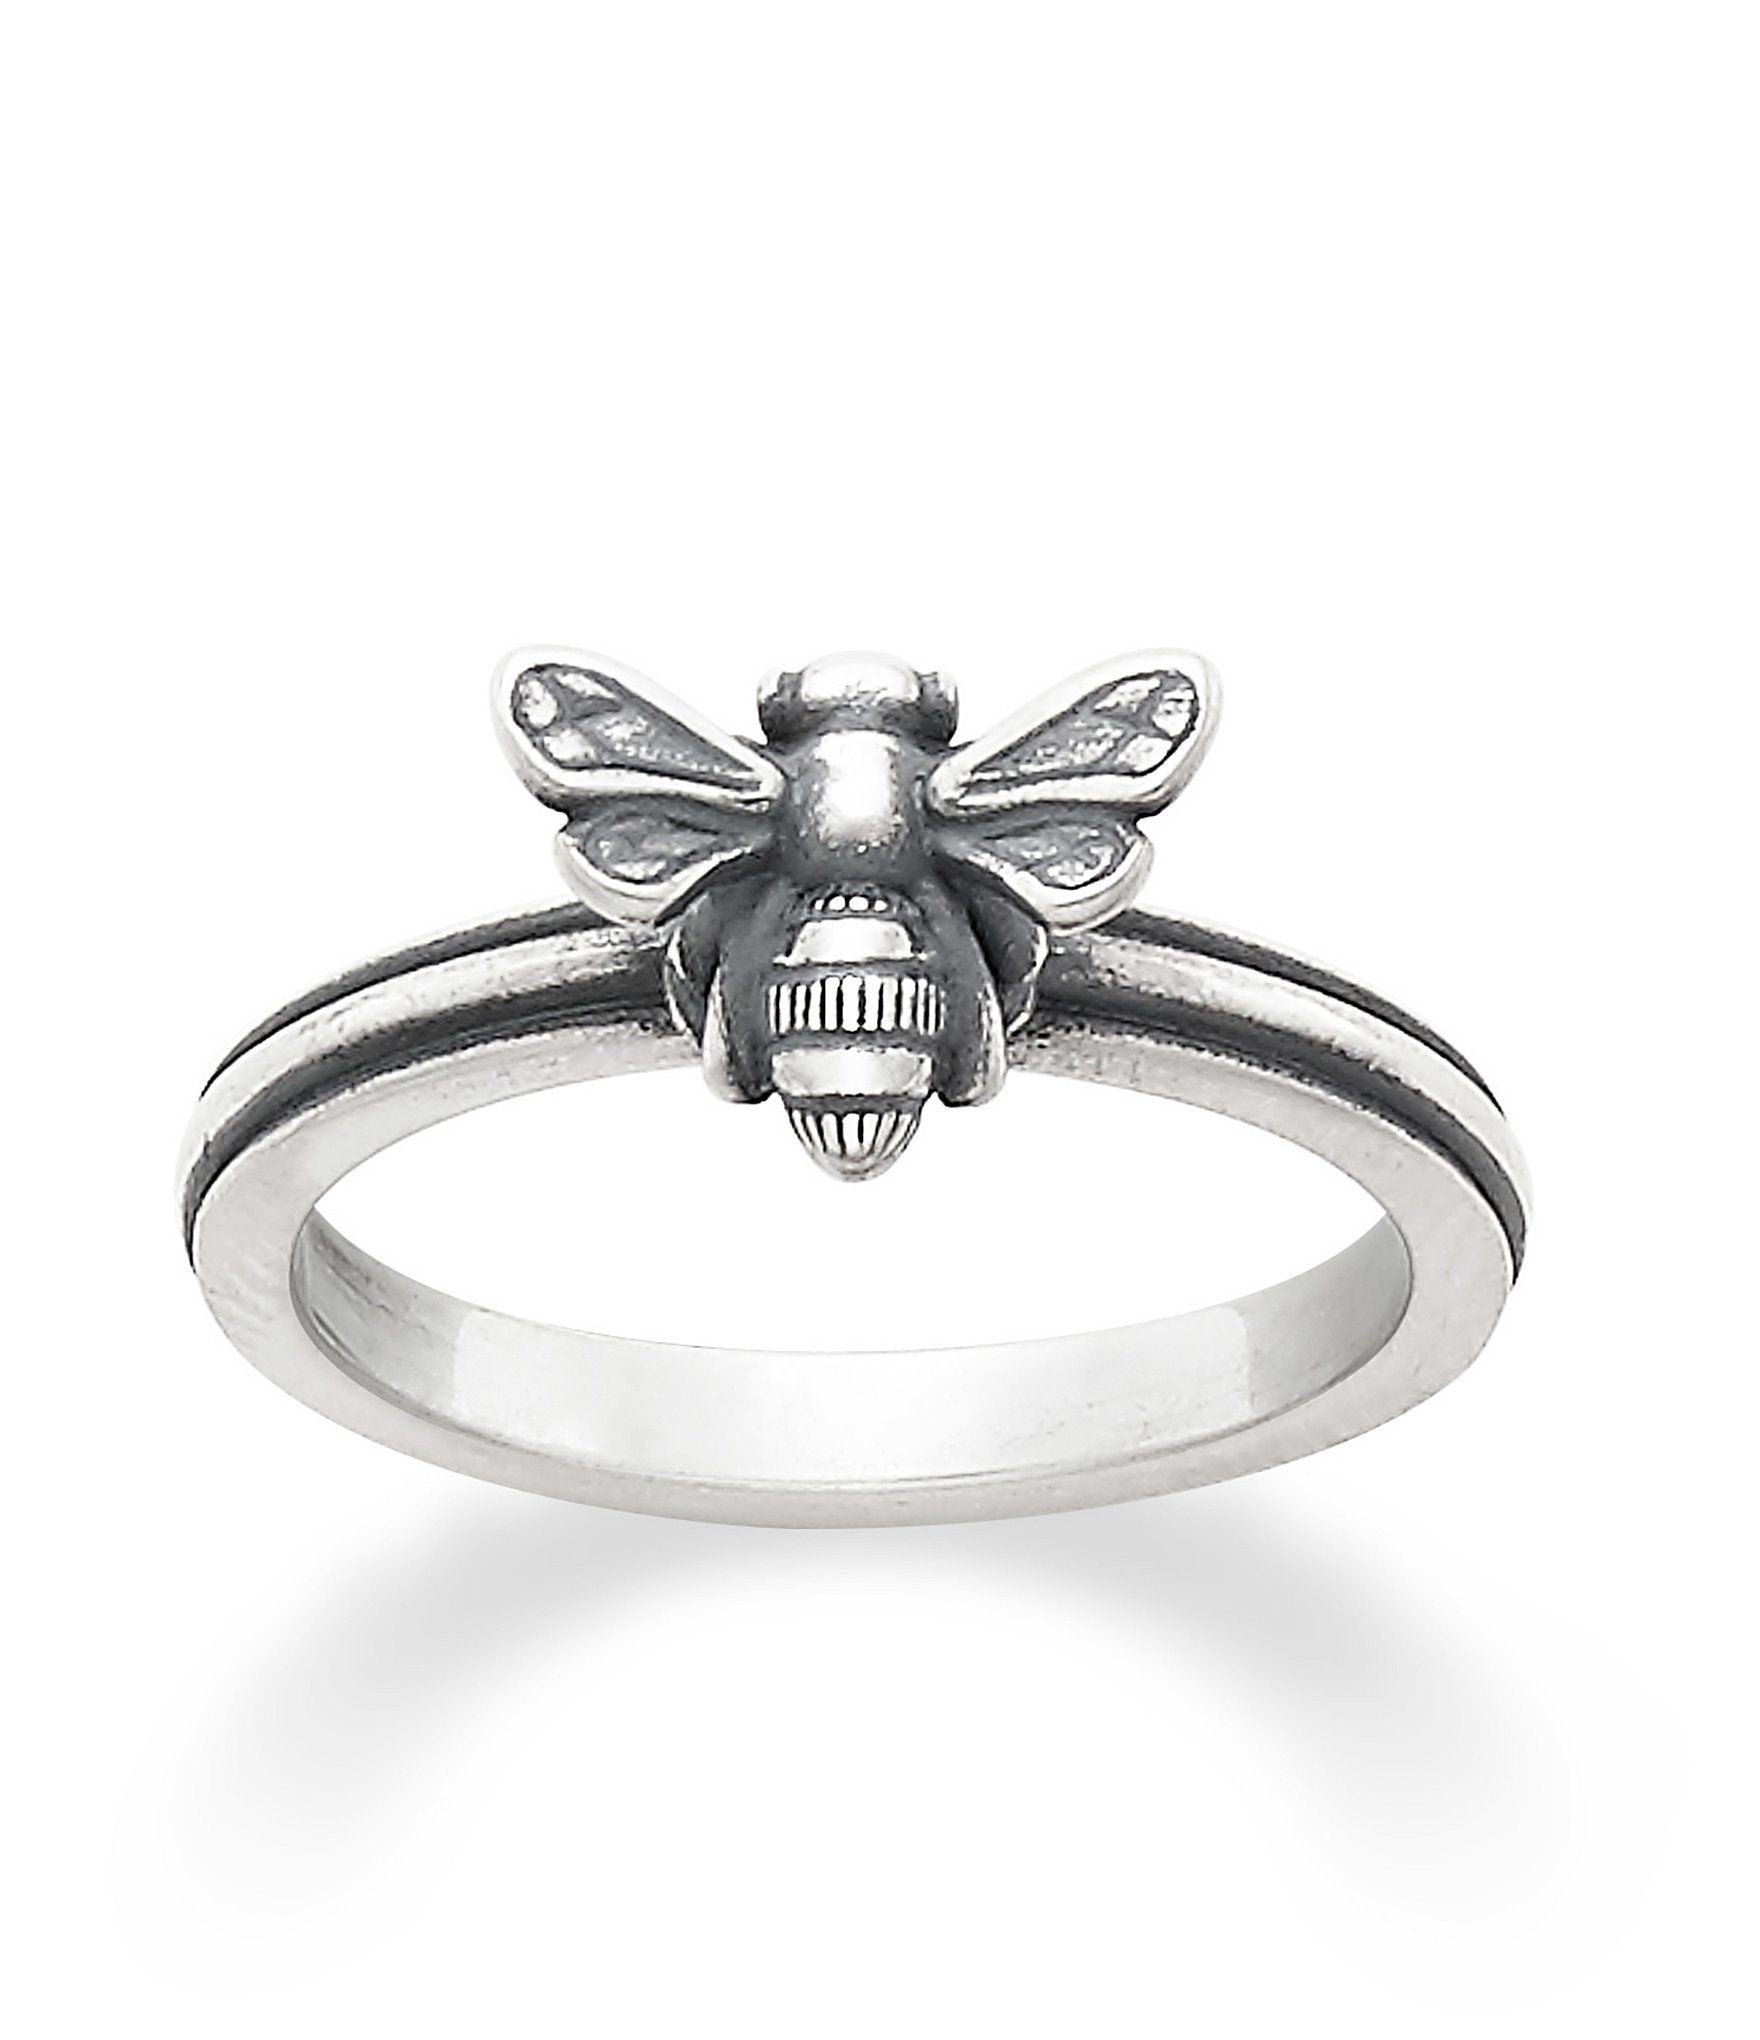 Shop for James Avery Honey Bee Ring at . Visit  to find clothing, accessories, shoes, cosmetics & more. The Style of Your Life.